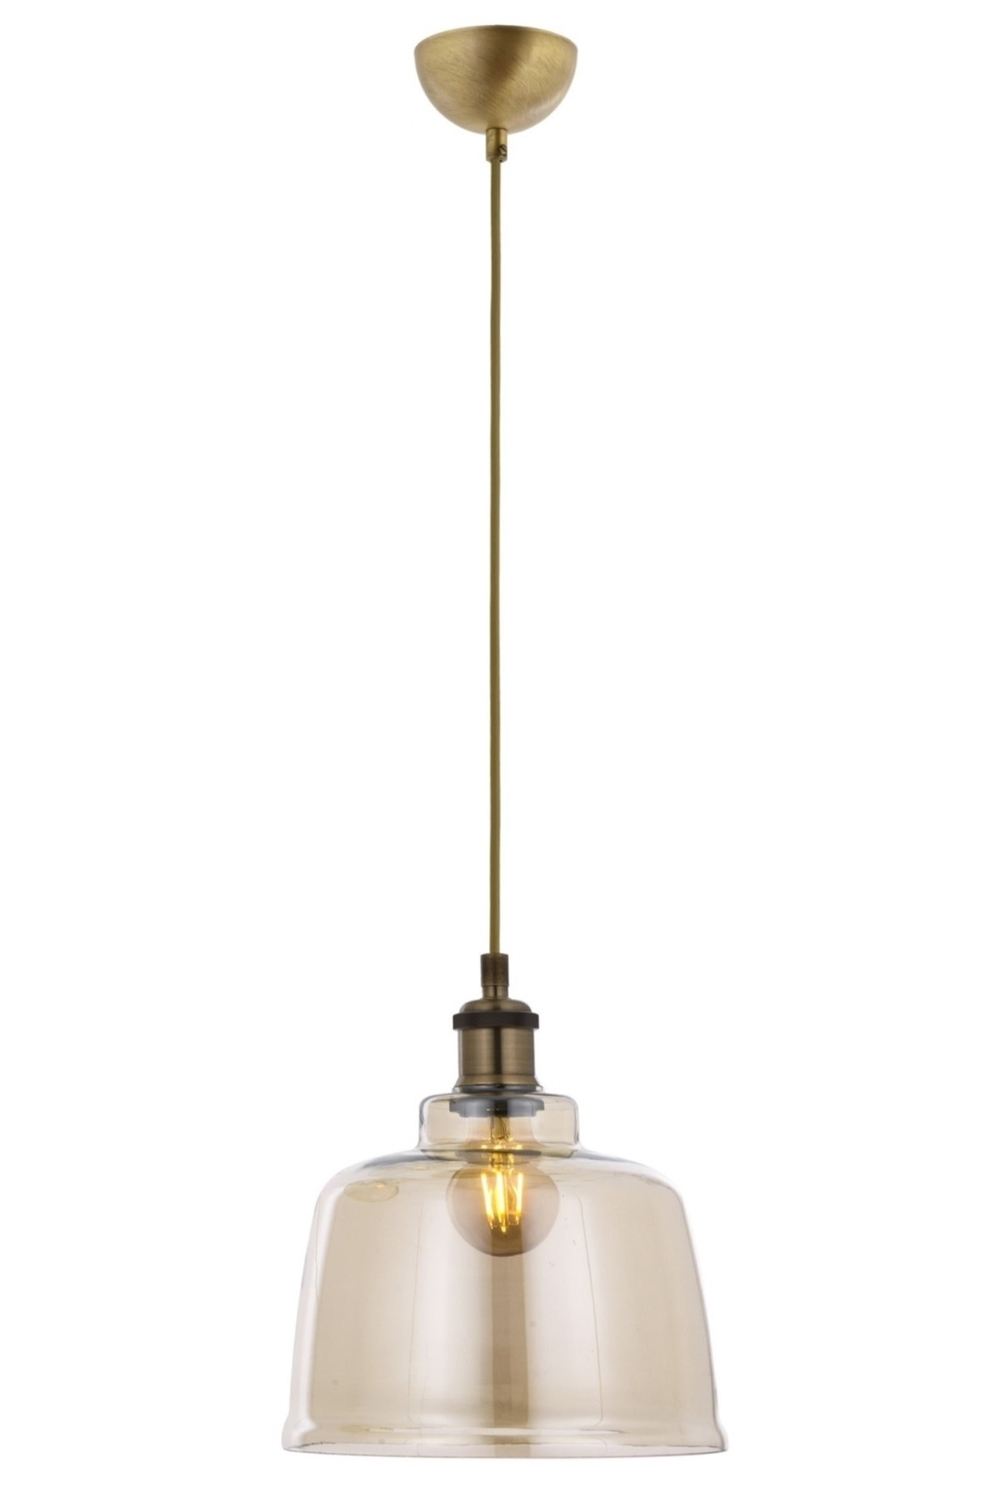 AVONNI AV-60155-1E Antique Plated Modern Chandelier, E27, Metal,